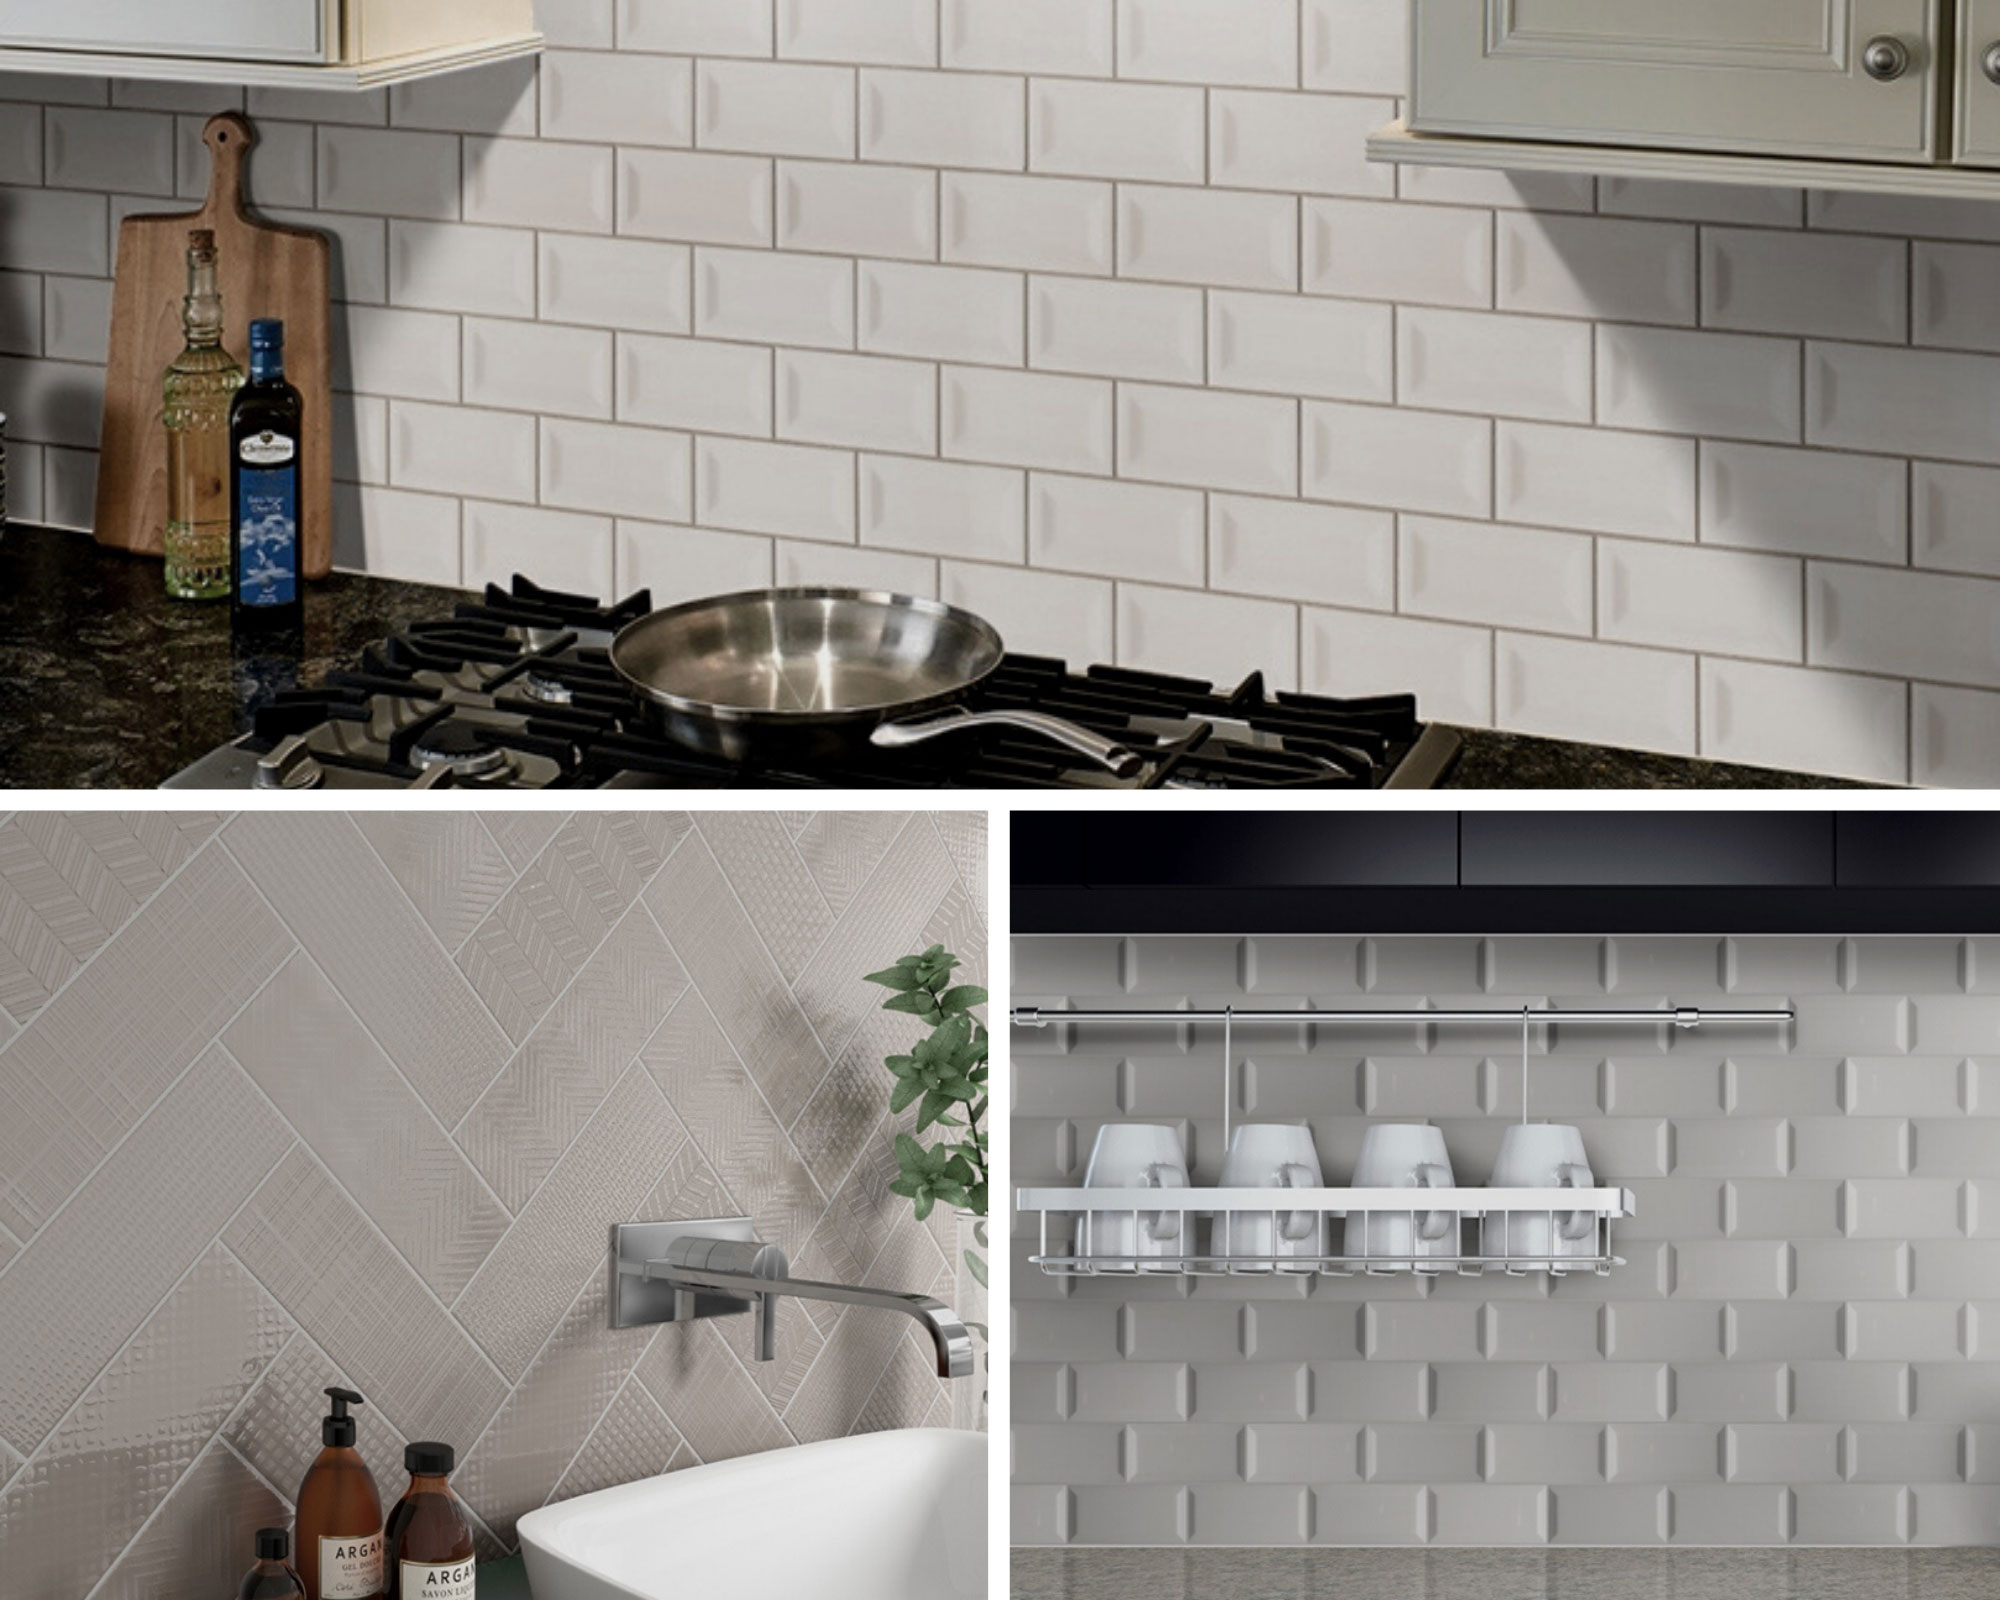 The Many Looks of Subway Tiles